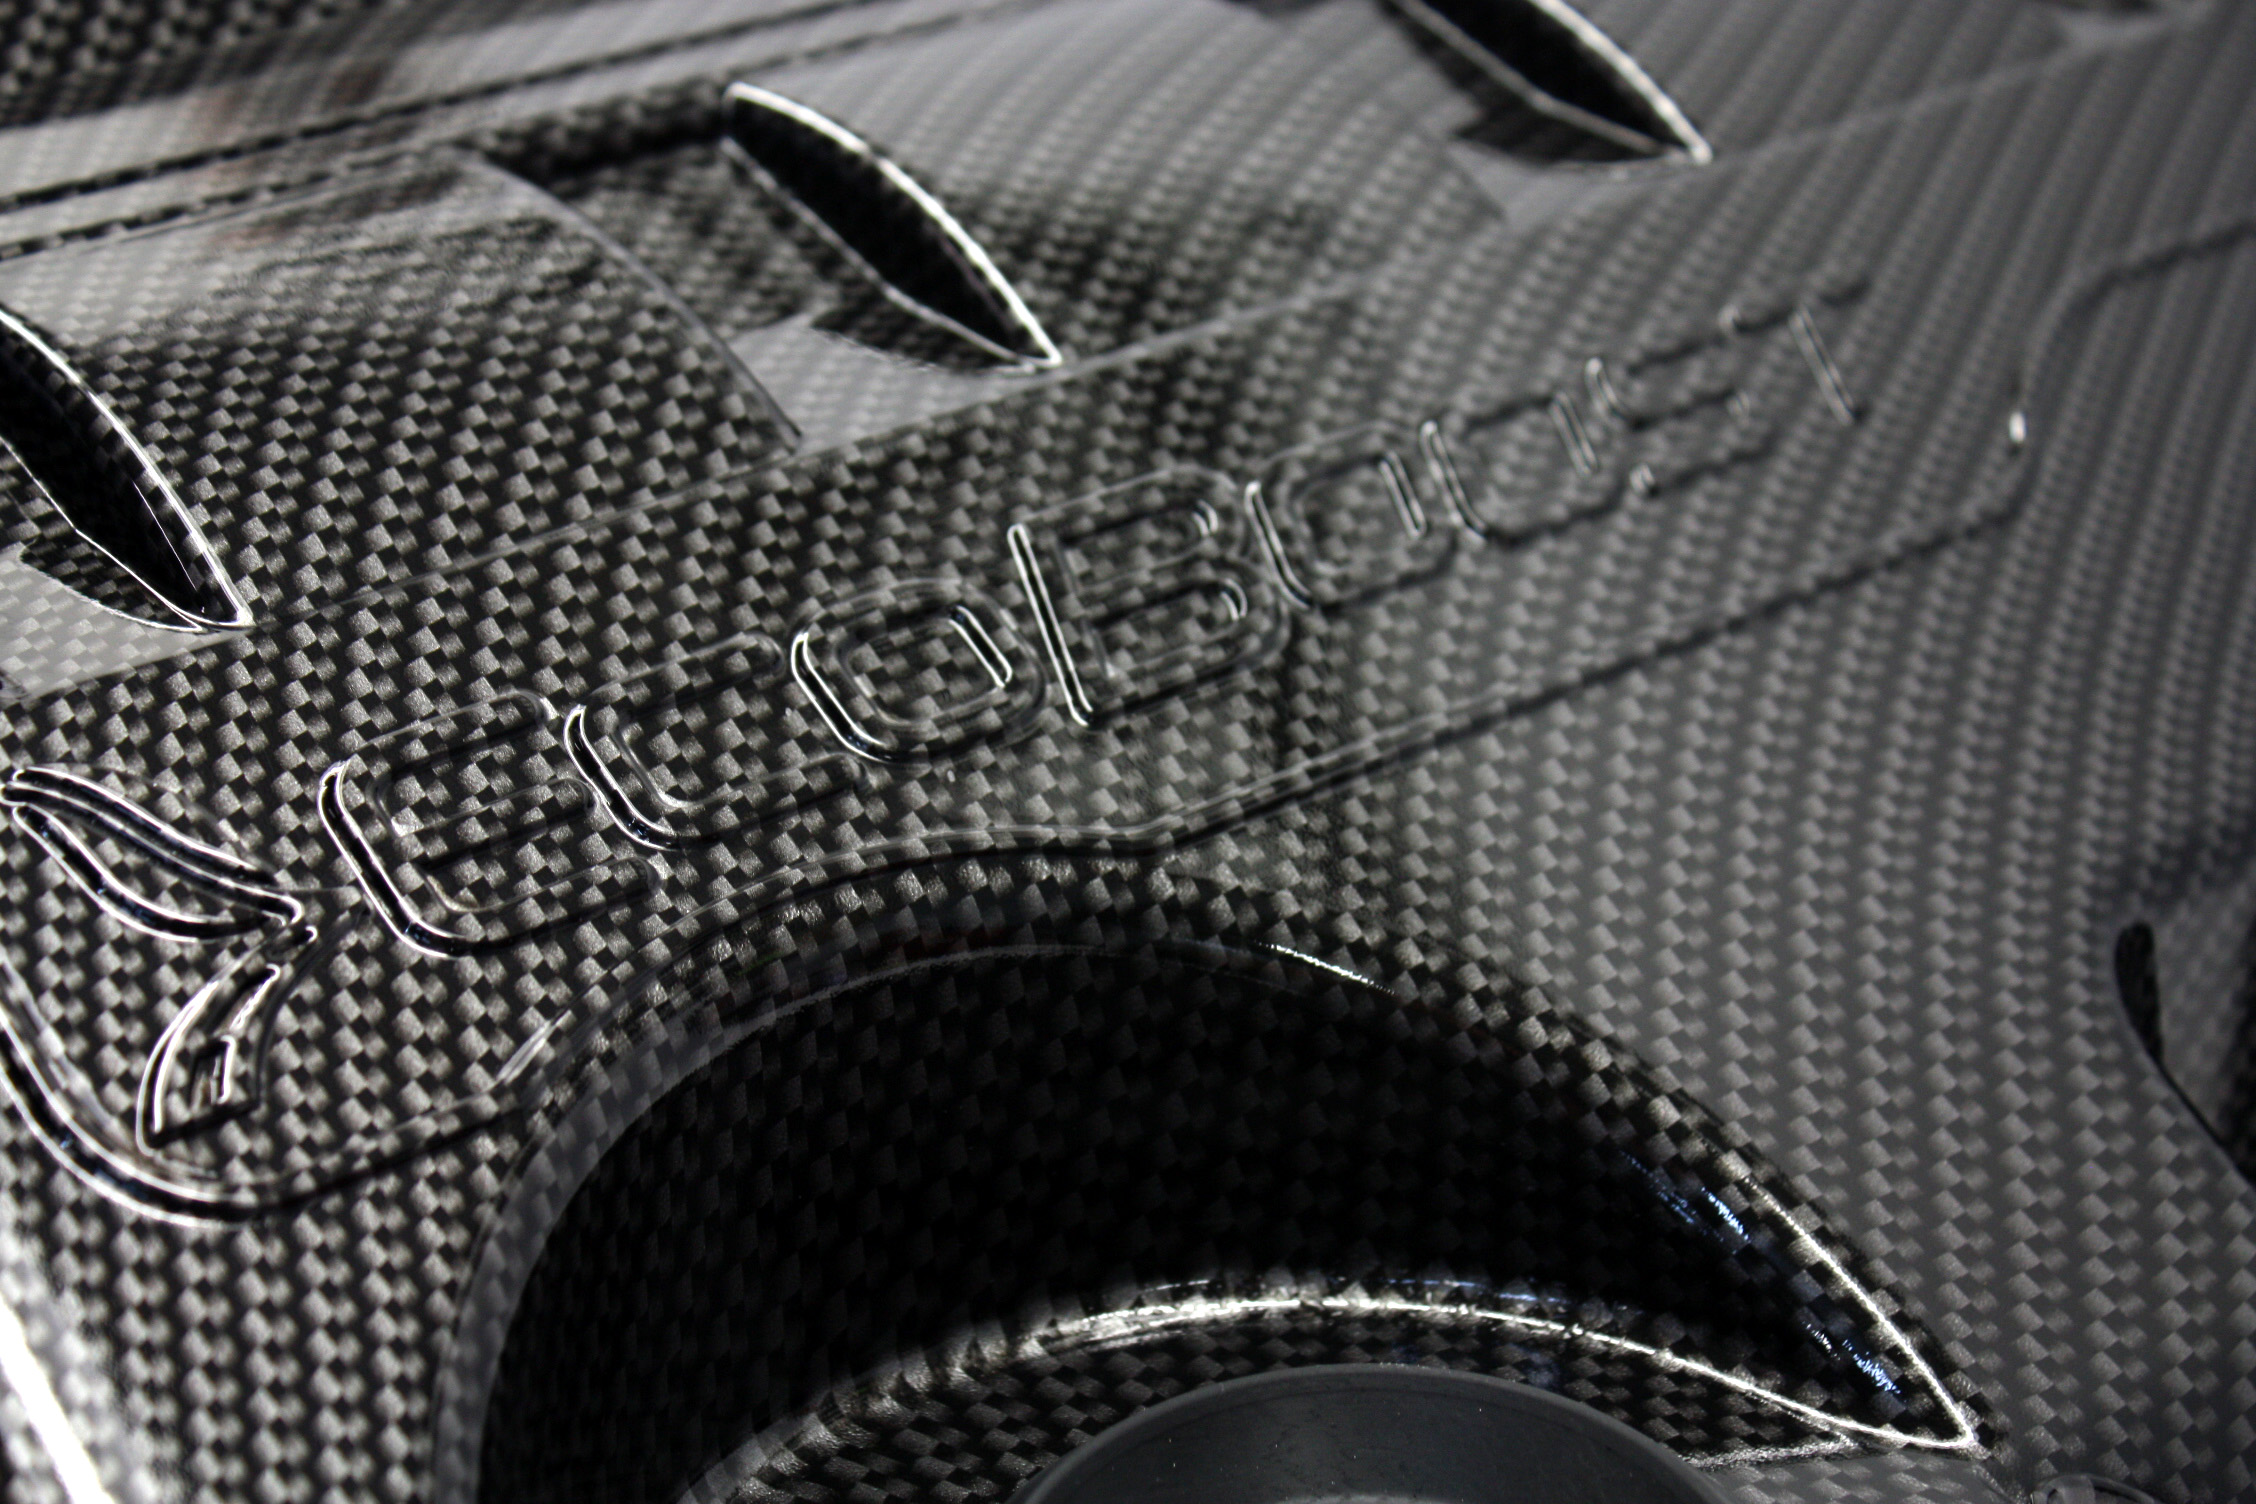 F150 Ecoboost Hydro dipped carbon fiber pattern engine covers